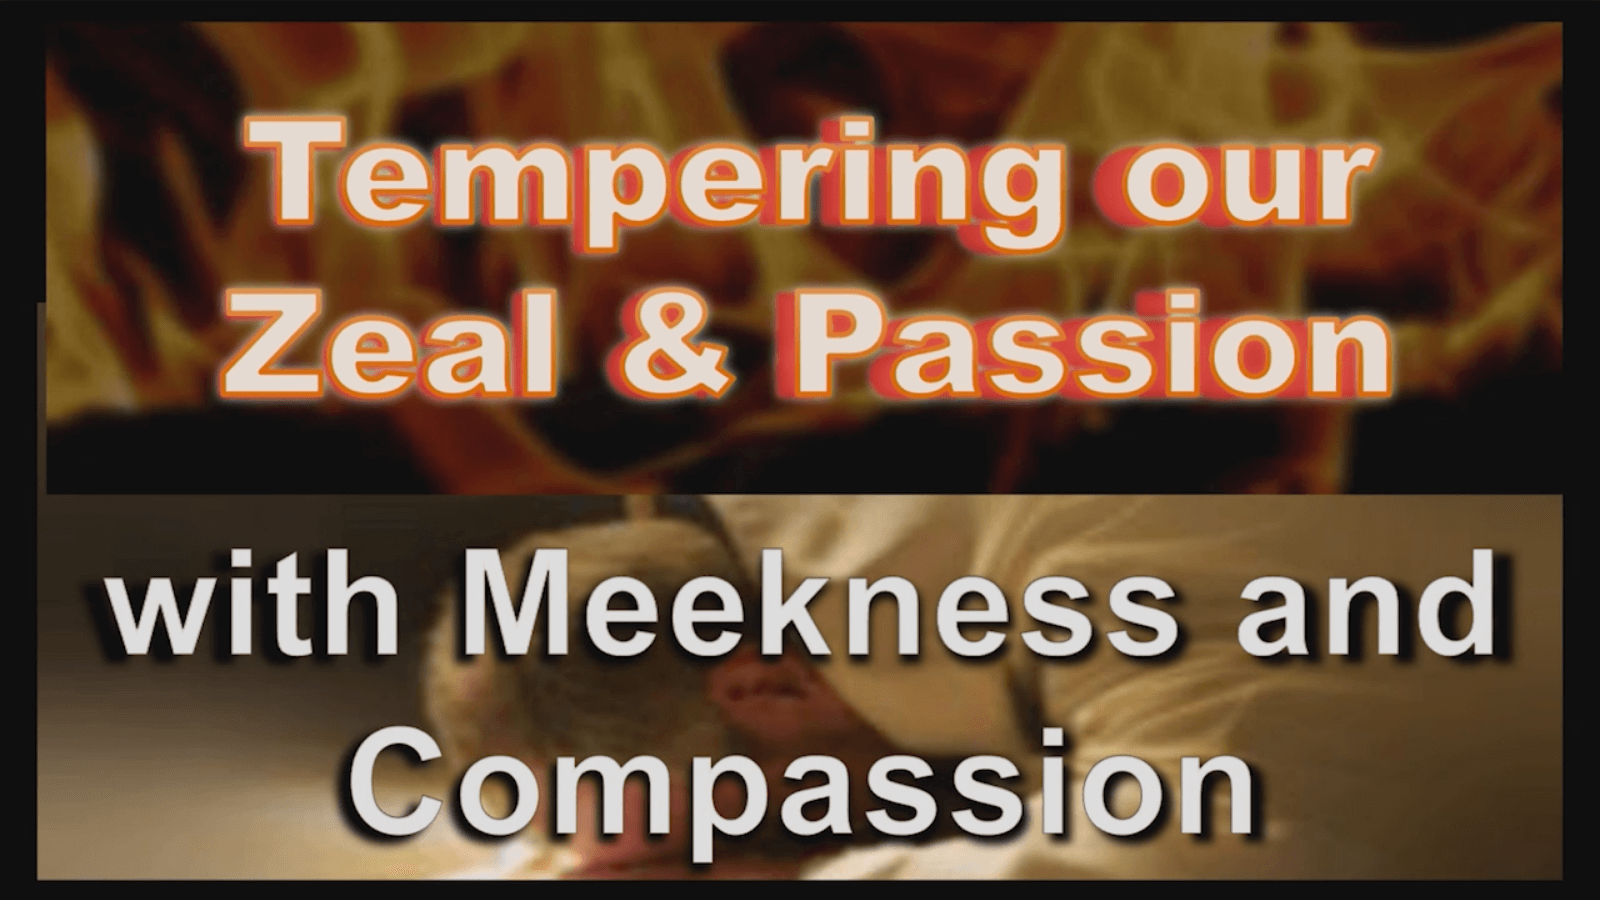 Tempering our Zeal & Passion with Meekness and Compassion